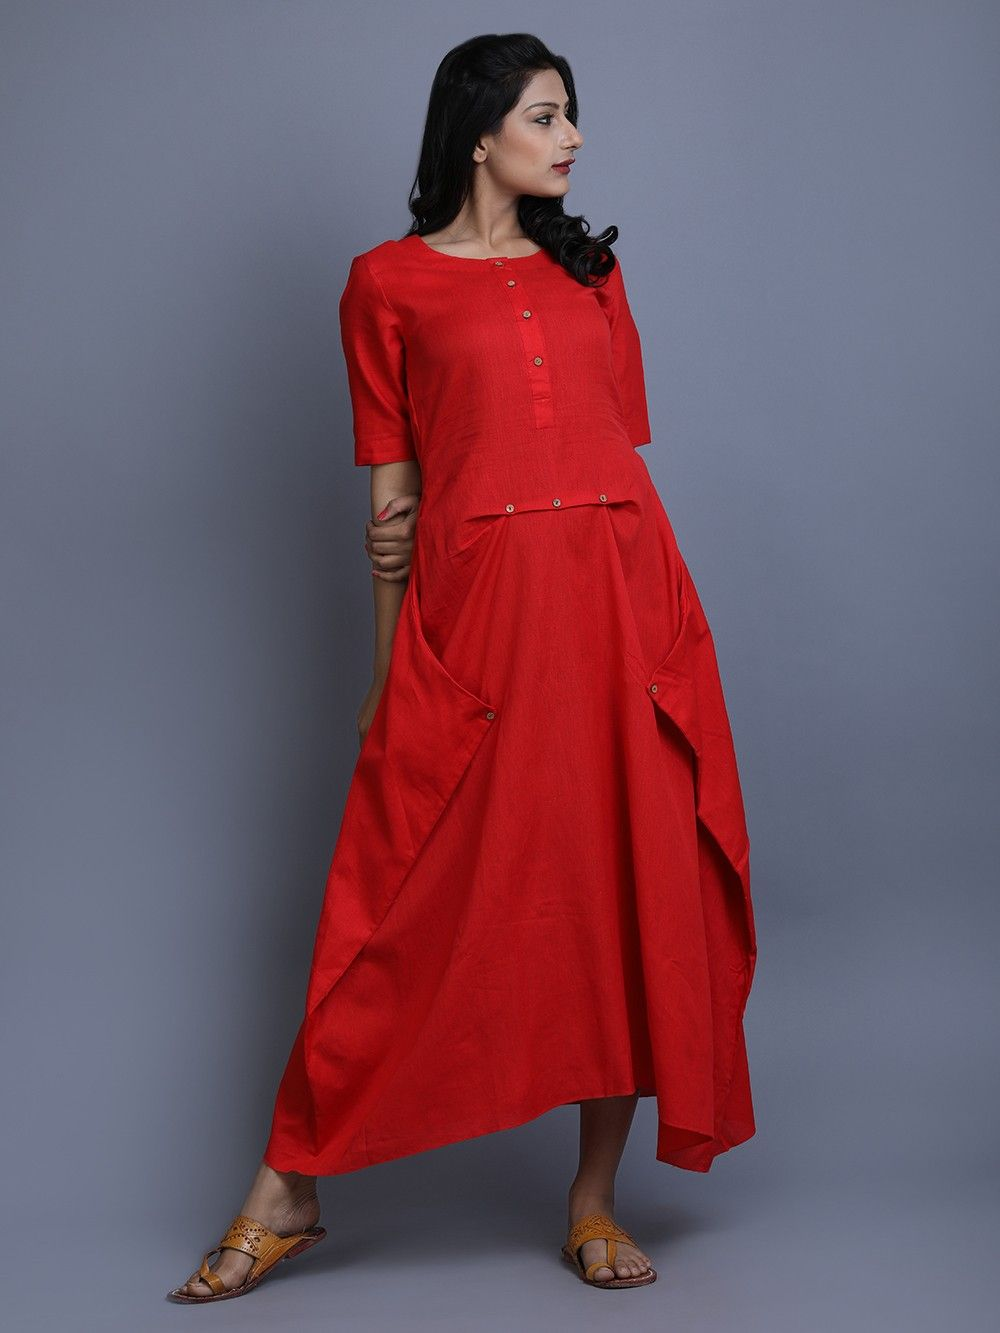 260fbf5dc7 Buy Red Cotton Linen Dress online at Theloom